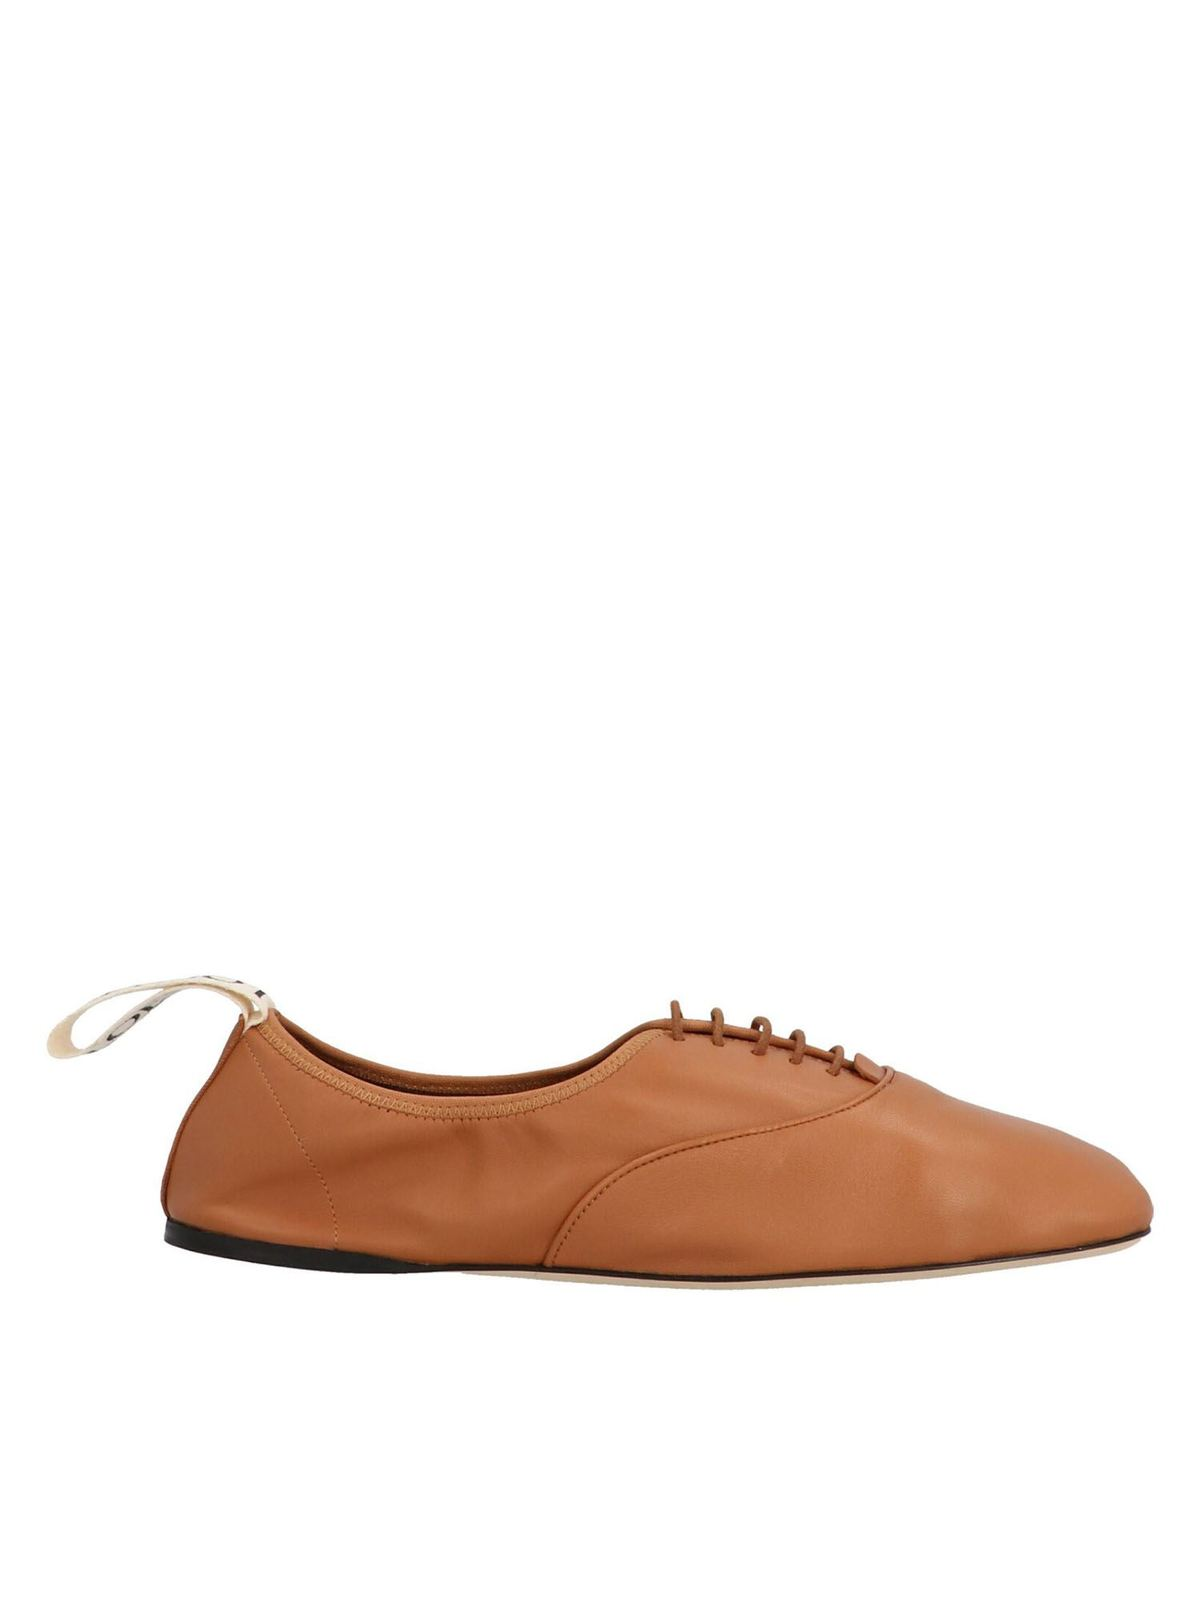 LOEWE SOFT DERBY LACE UP SHOES IN BROWN